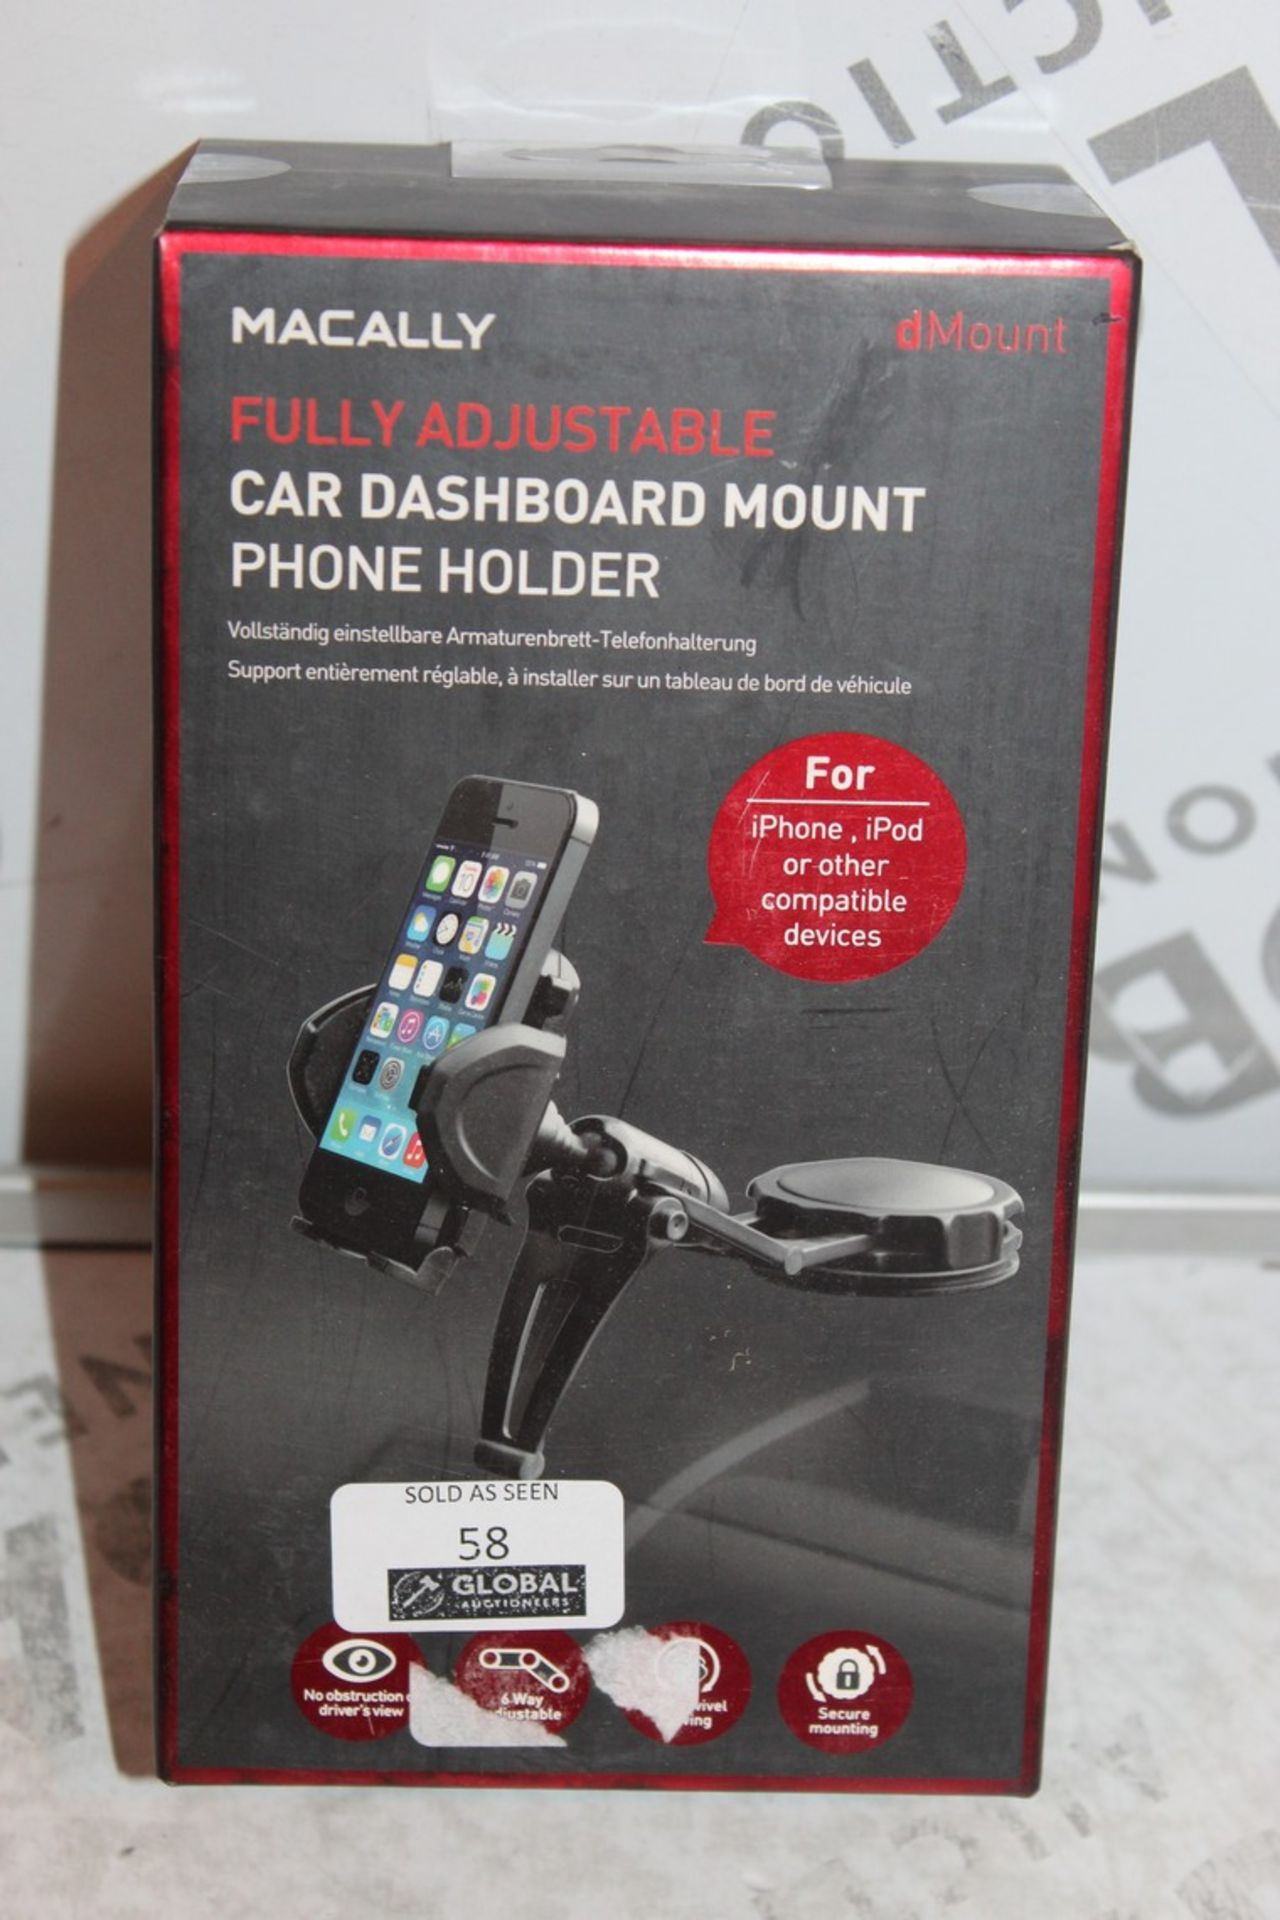 Lot 58 - Lot to Contain 4, Boxed Brand-New, Macally Mount, Car Dashboard Phone Holders, Combined RRP£80.00